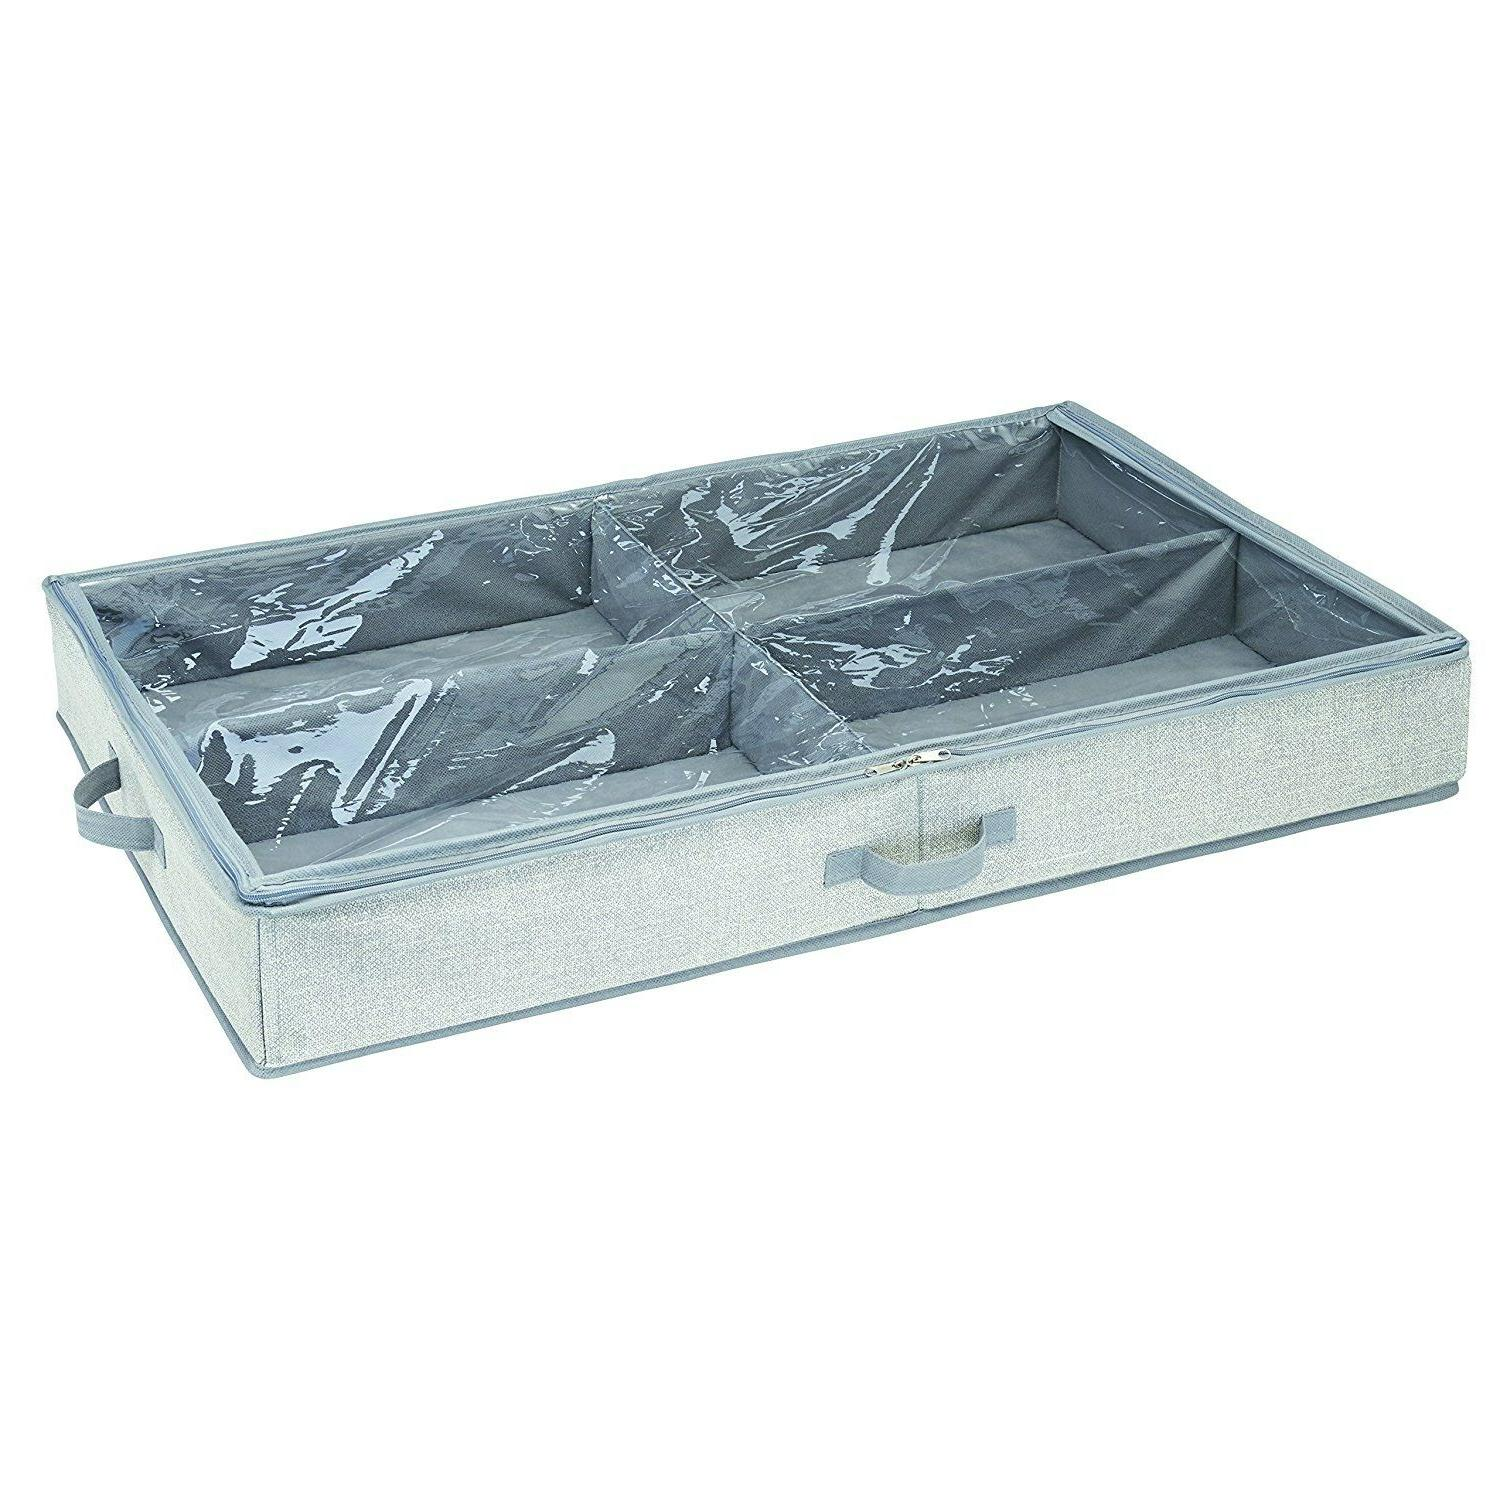 aldo 4 compartment under bed storage box